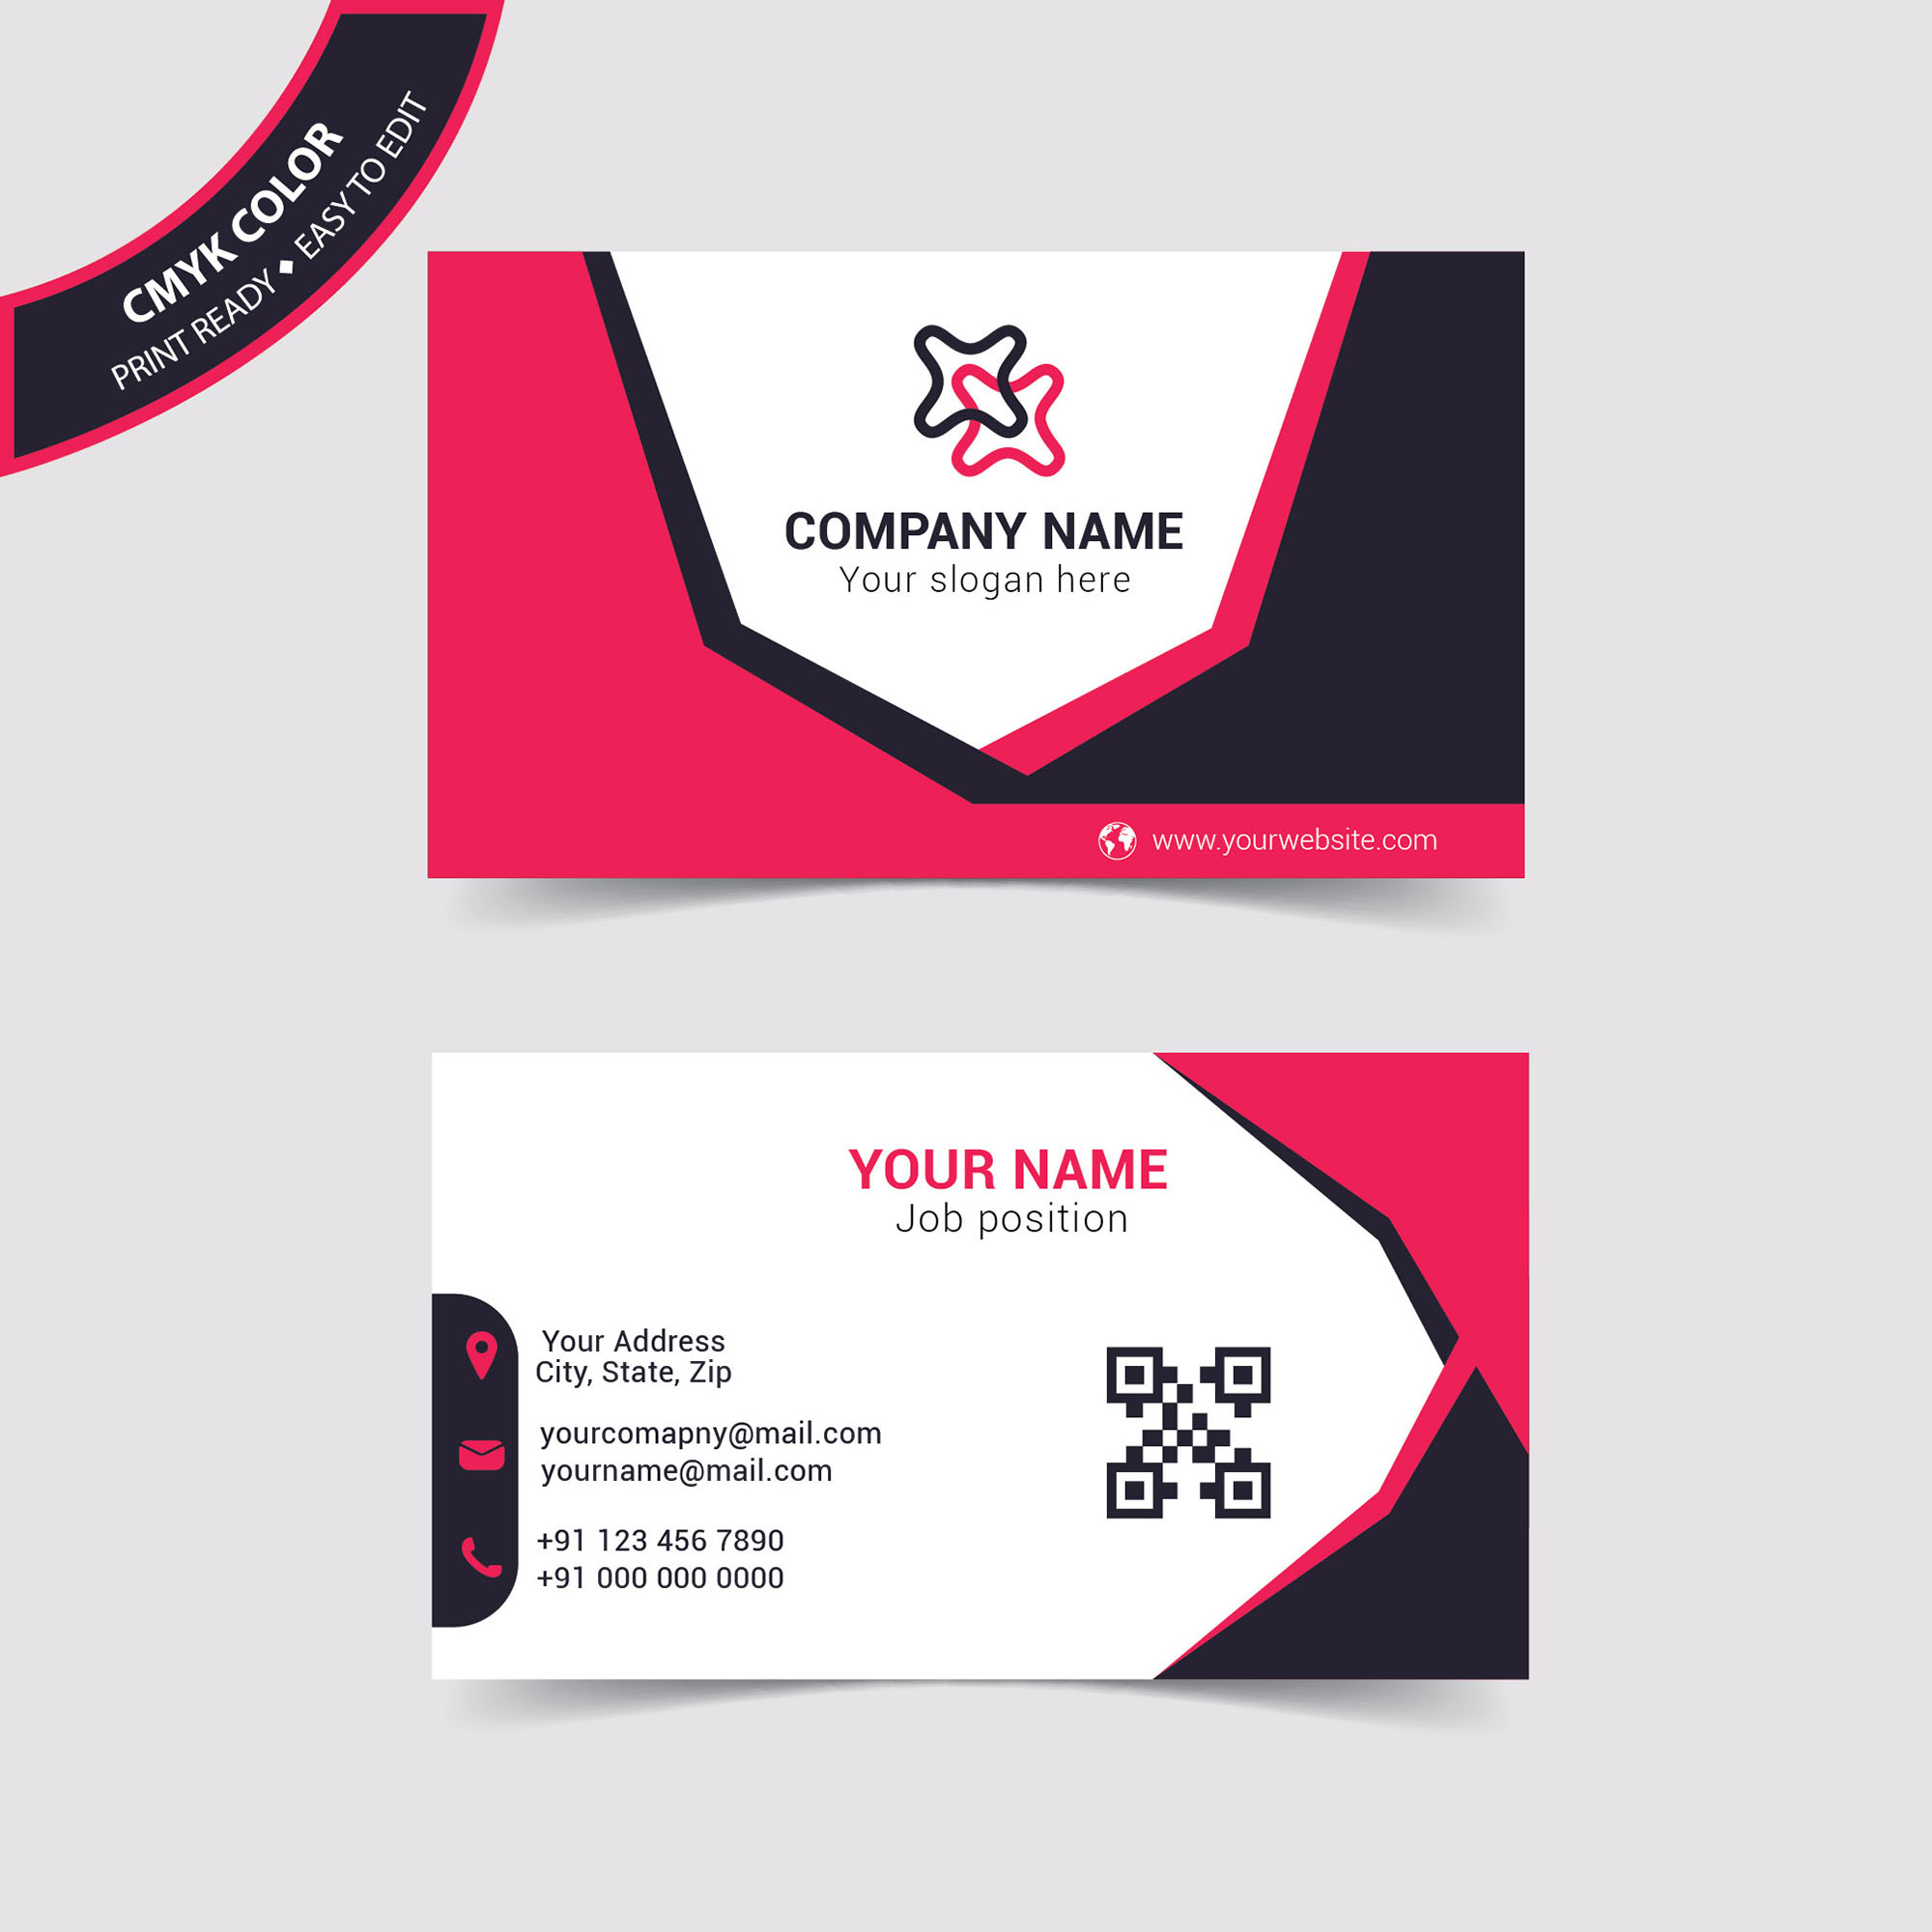 Personal name card design free download print template wisxi business card business cards business card design business card template design templates accmission Choice Image